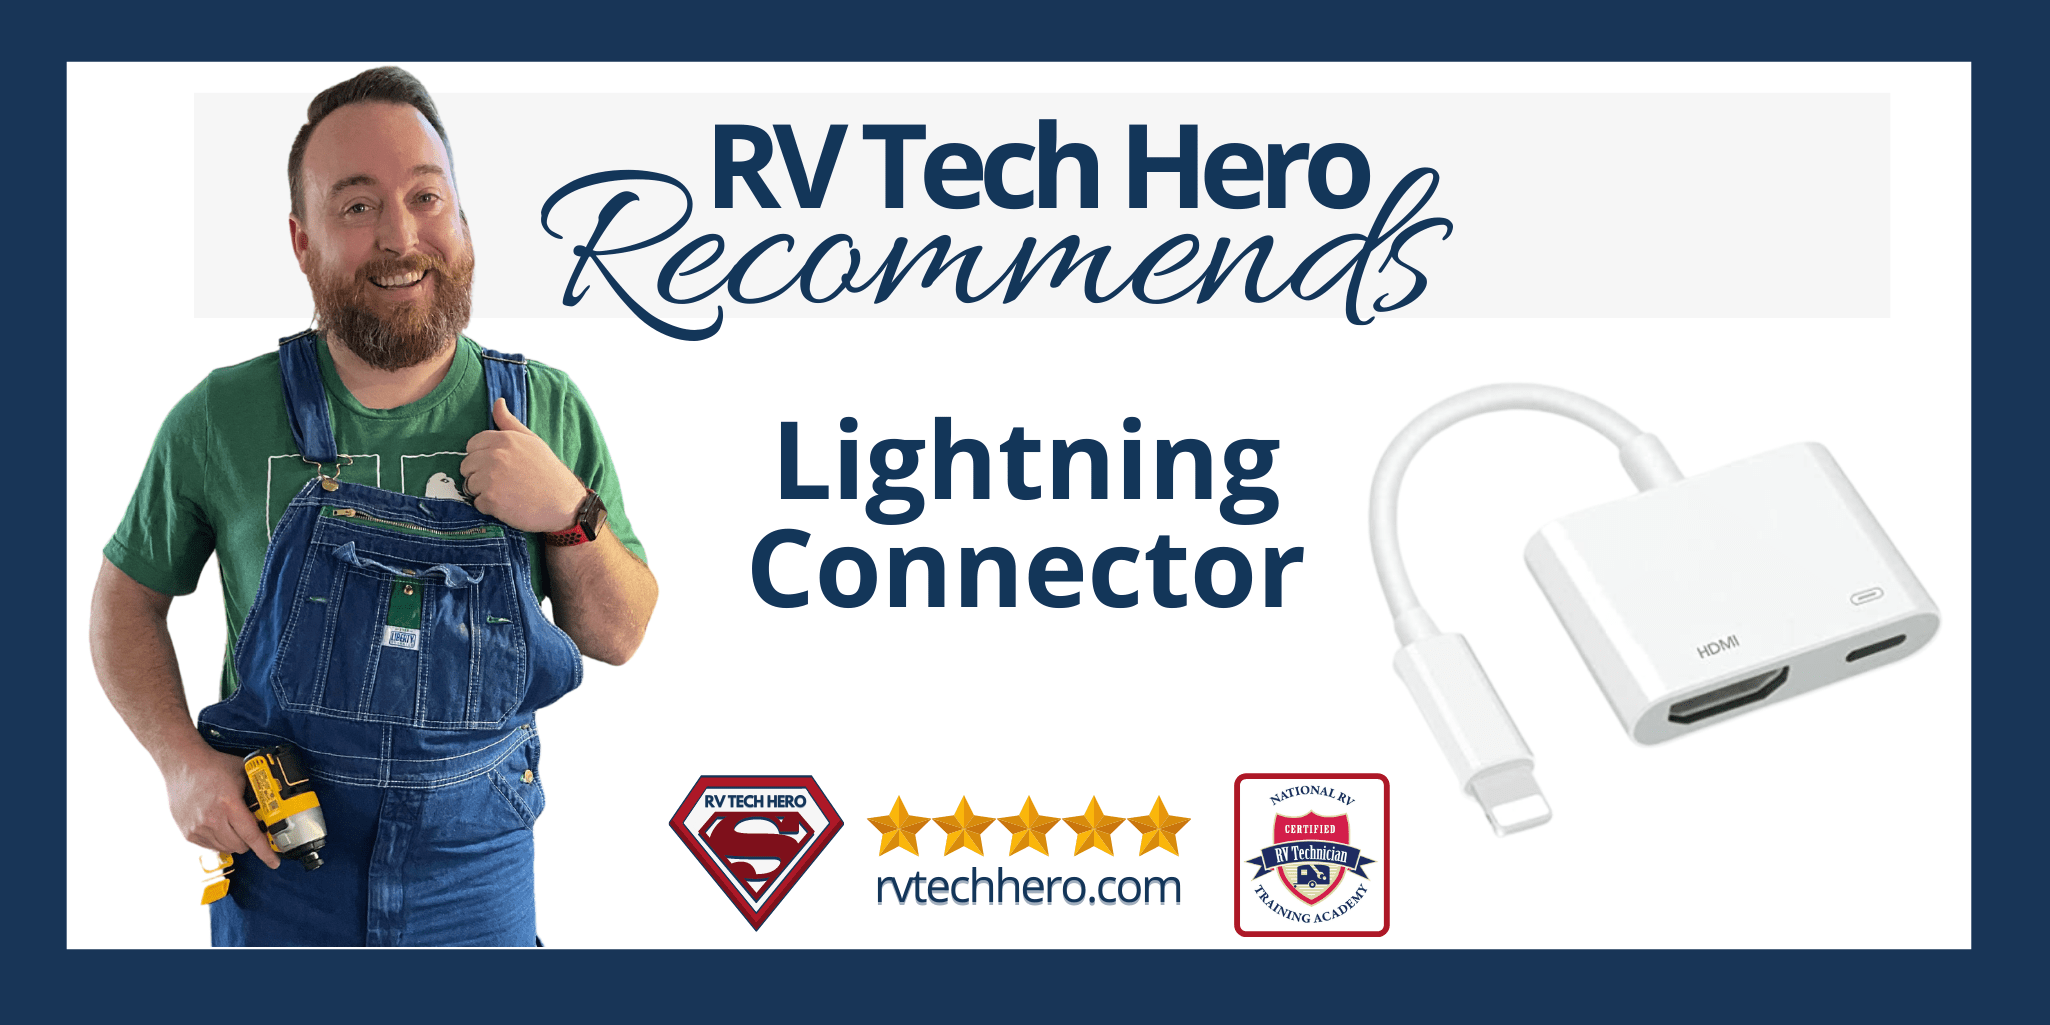 This Lightning Connector is recommended by RV Tech Hero